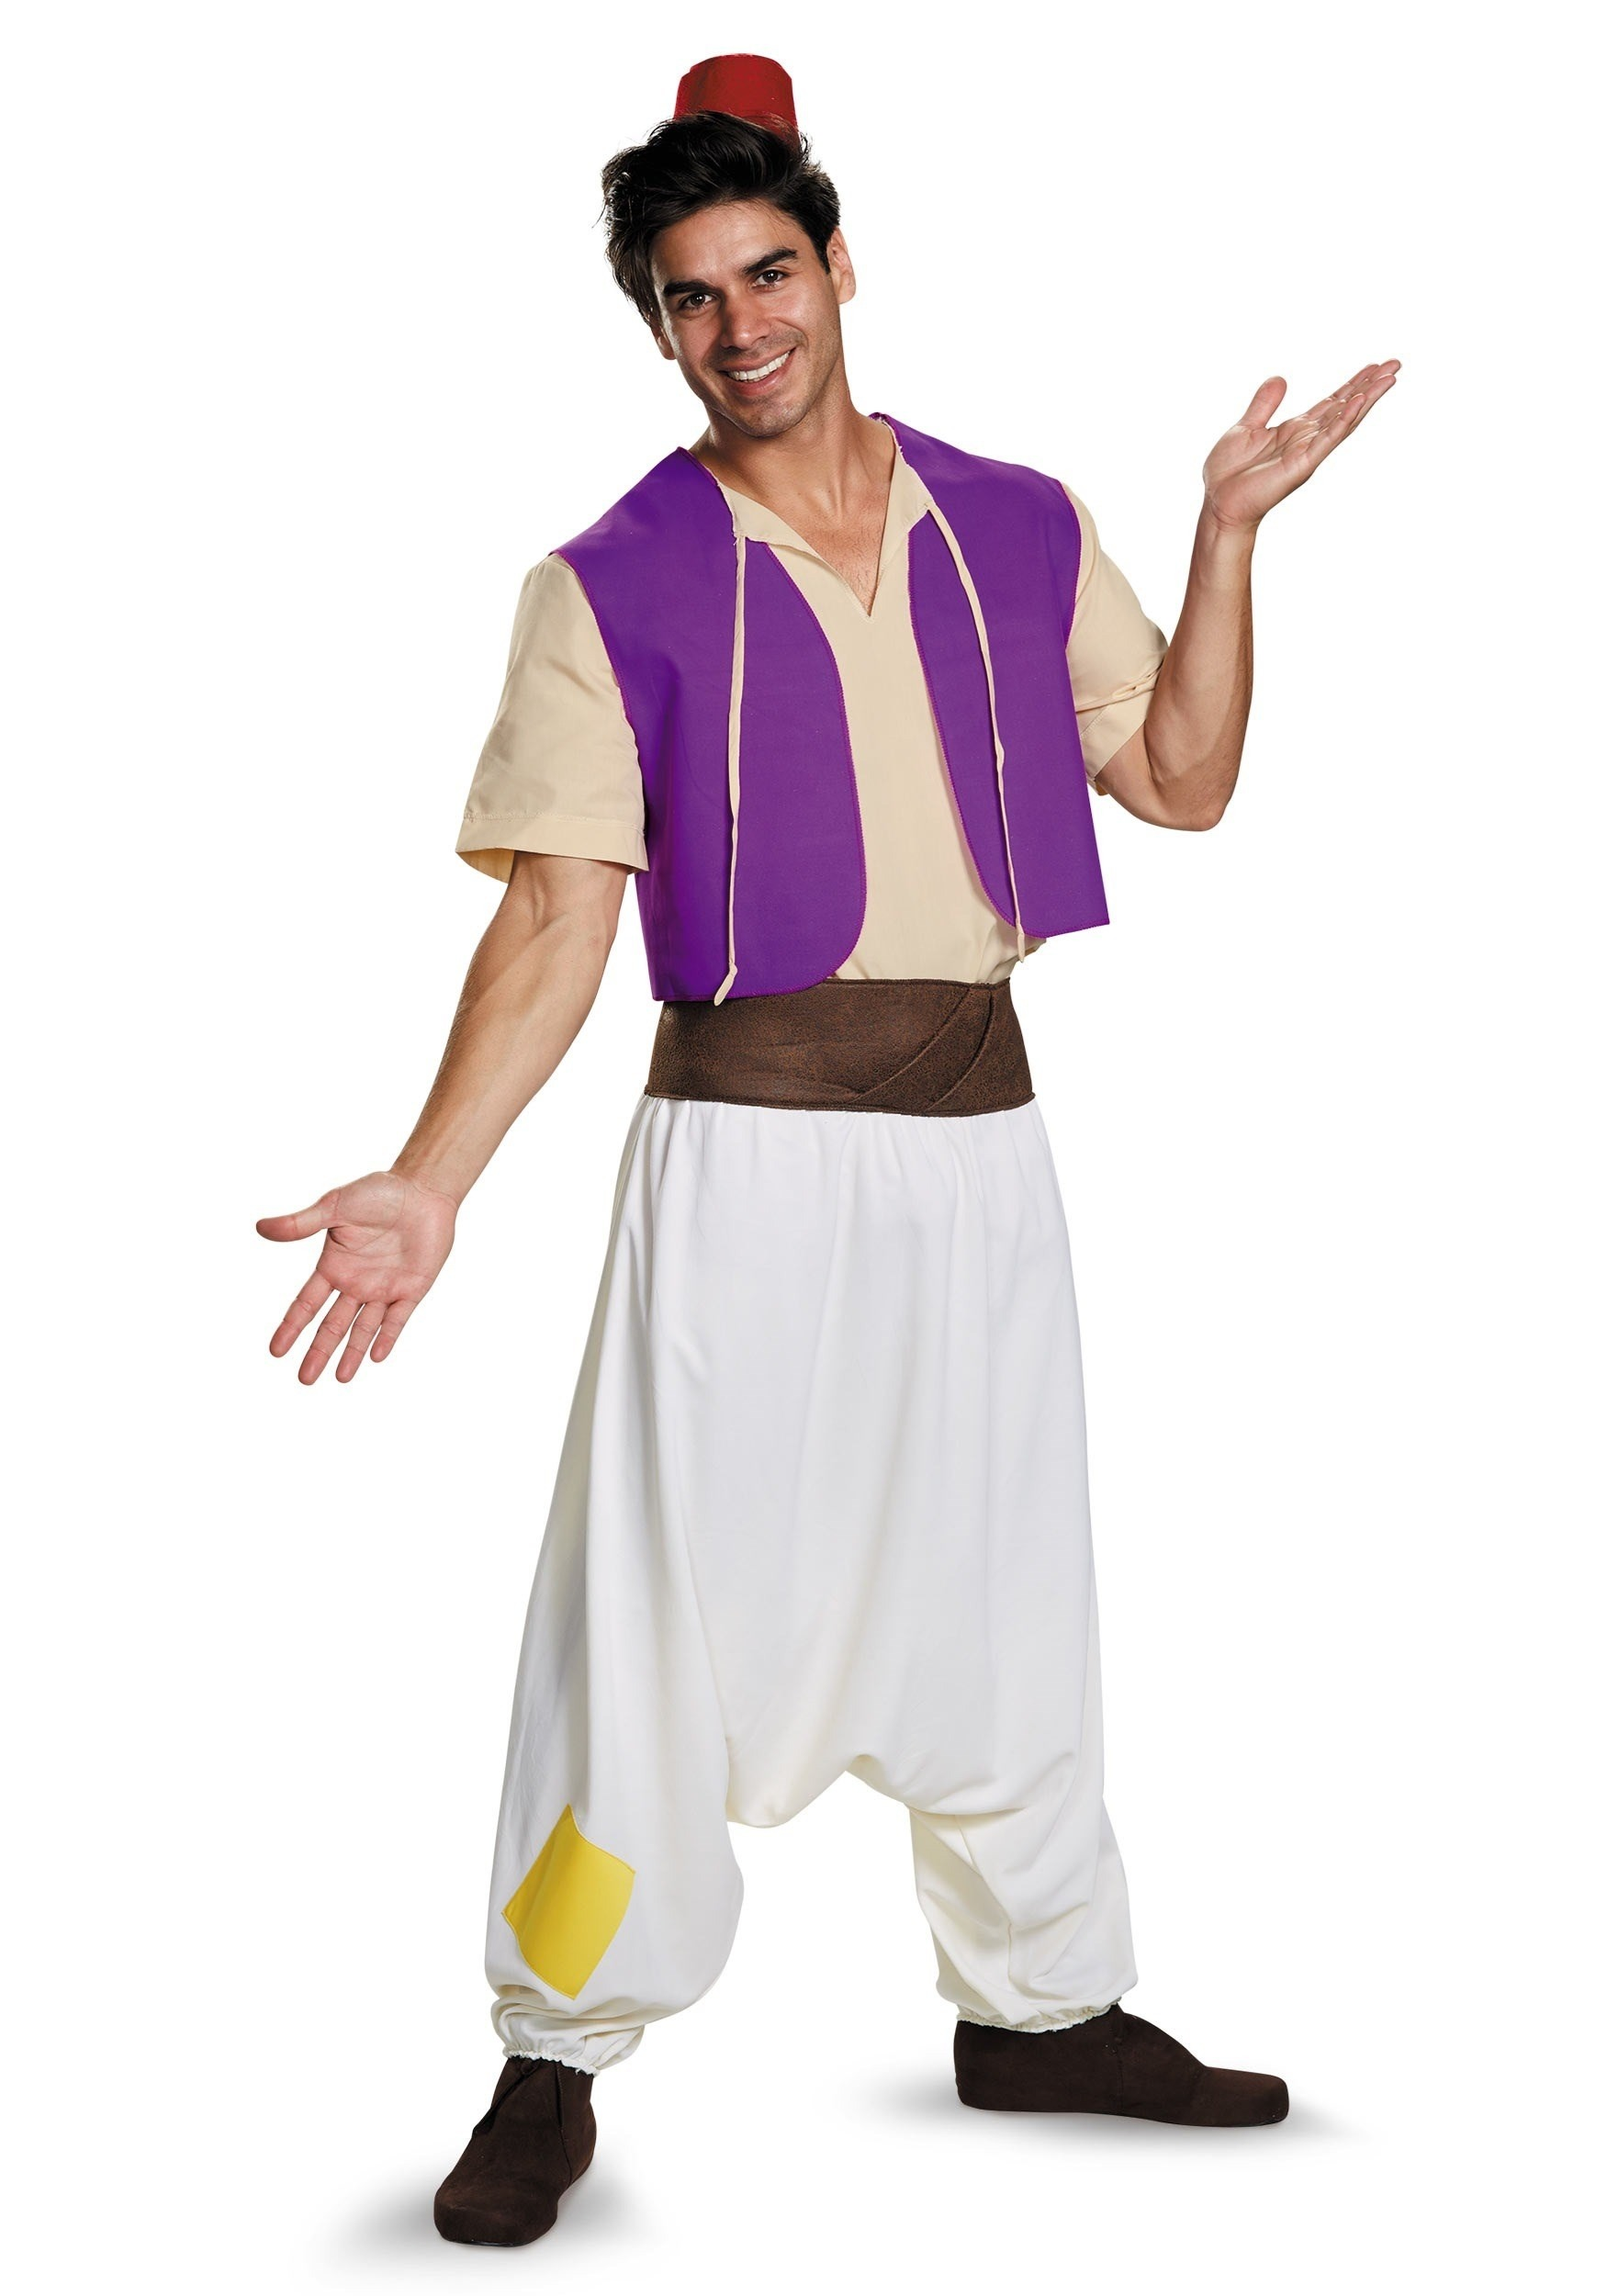 aladdin disney 3 wishes costumes on sale